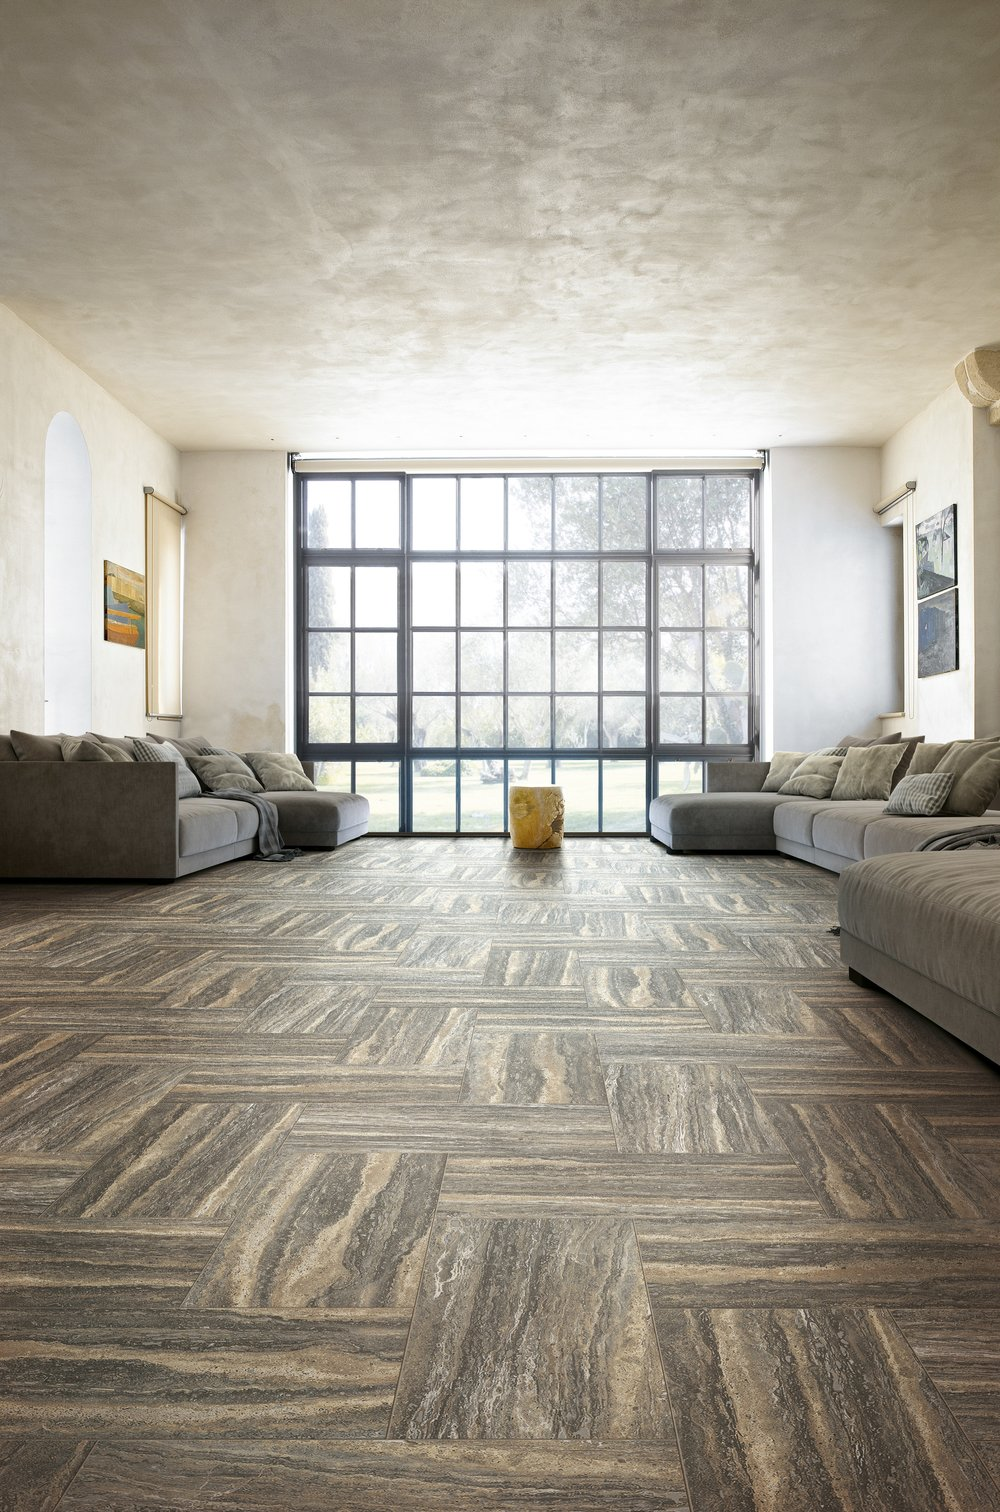 What Is a Rectified Tile? - Rectification is the process of grinding down the edges of porcelain tiles, in order to create tiles that are all exactly the same size. This allows for a smaller grout joint, which creates a more natural and smooth appearance. Rectified tiles can be more expensive as the grinding of the edges is an additional process completed on the tiles.